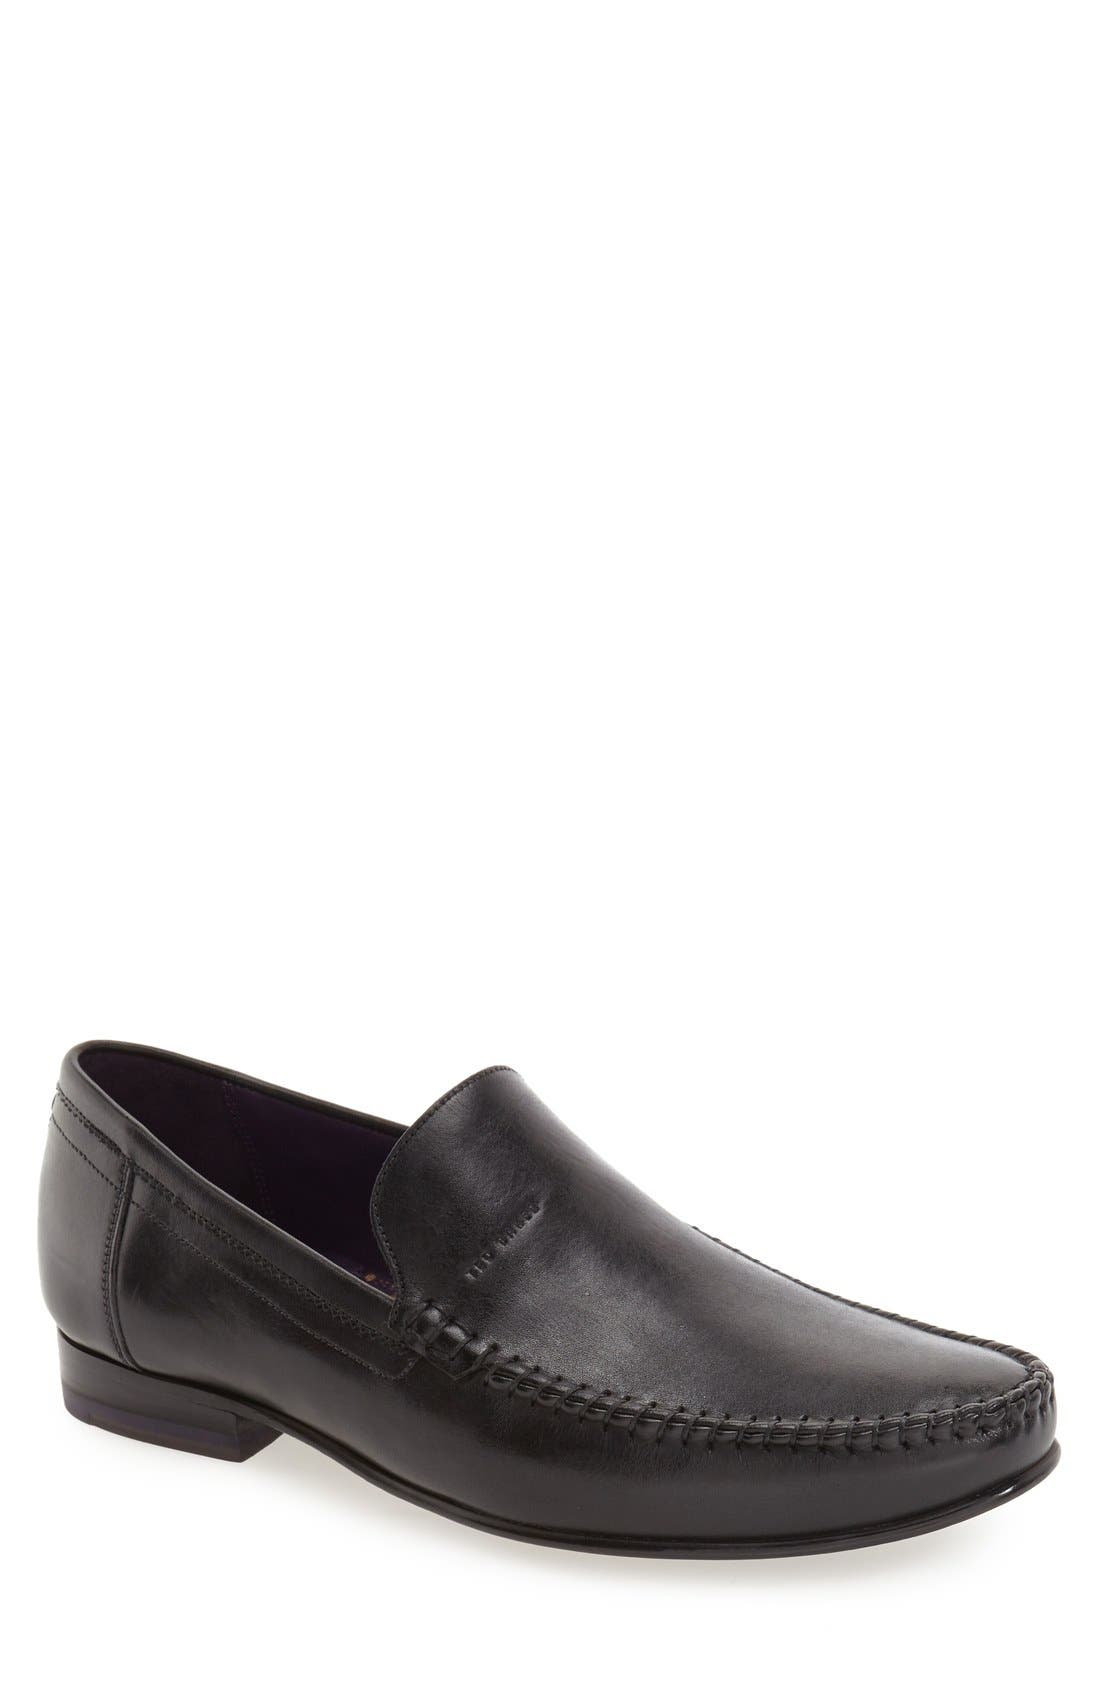 Alternate Image 1 Selected - Ted Baker London 'Simeen 3' Venetian Loafer (Men)